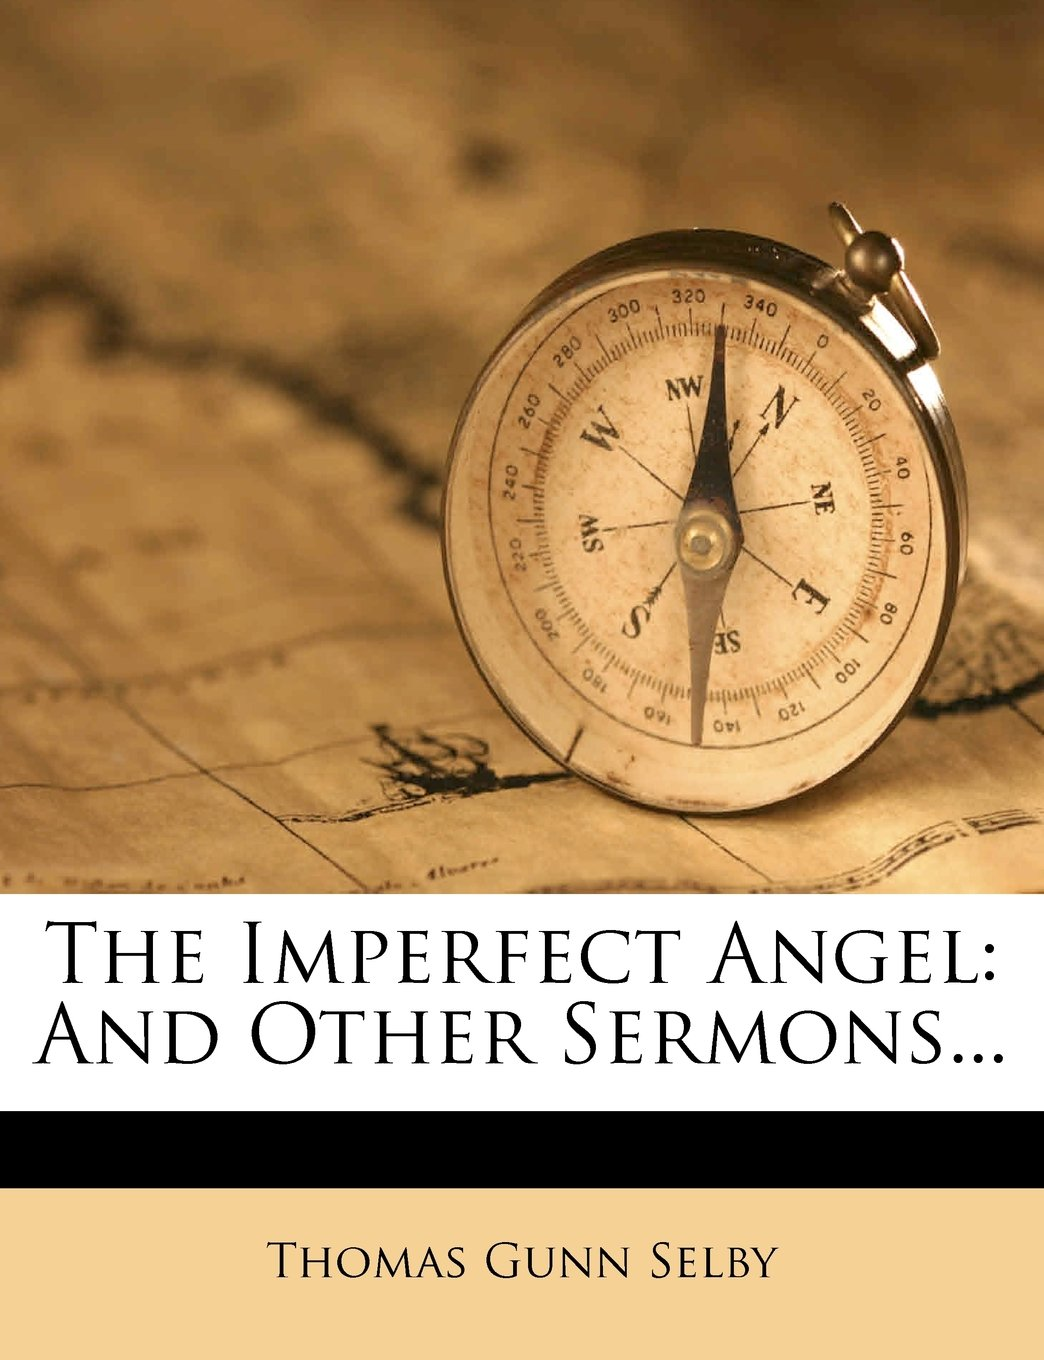 The Imperfect Angel: And Other Sermons... PDF